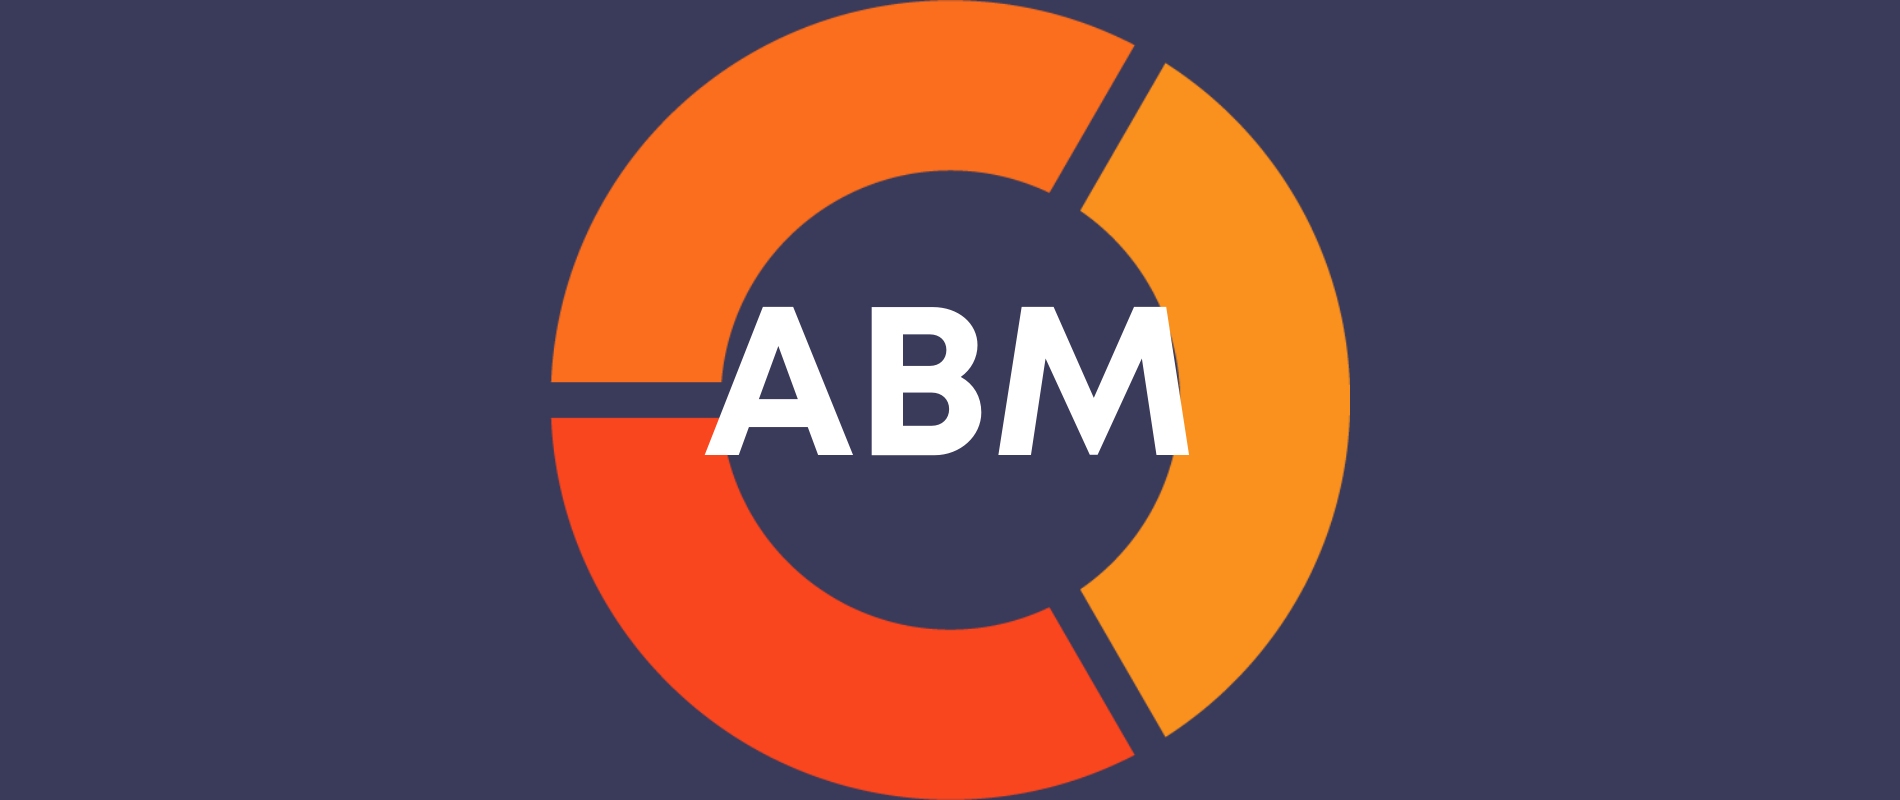 Who Should Manage Your ABM Strategy?